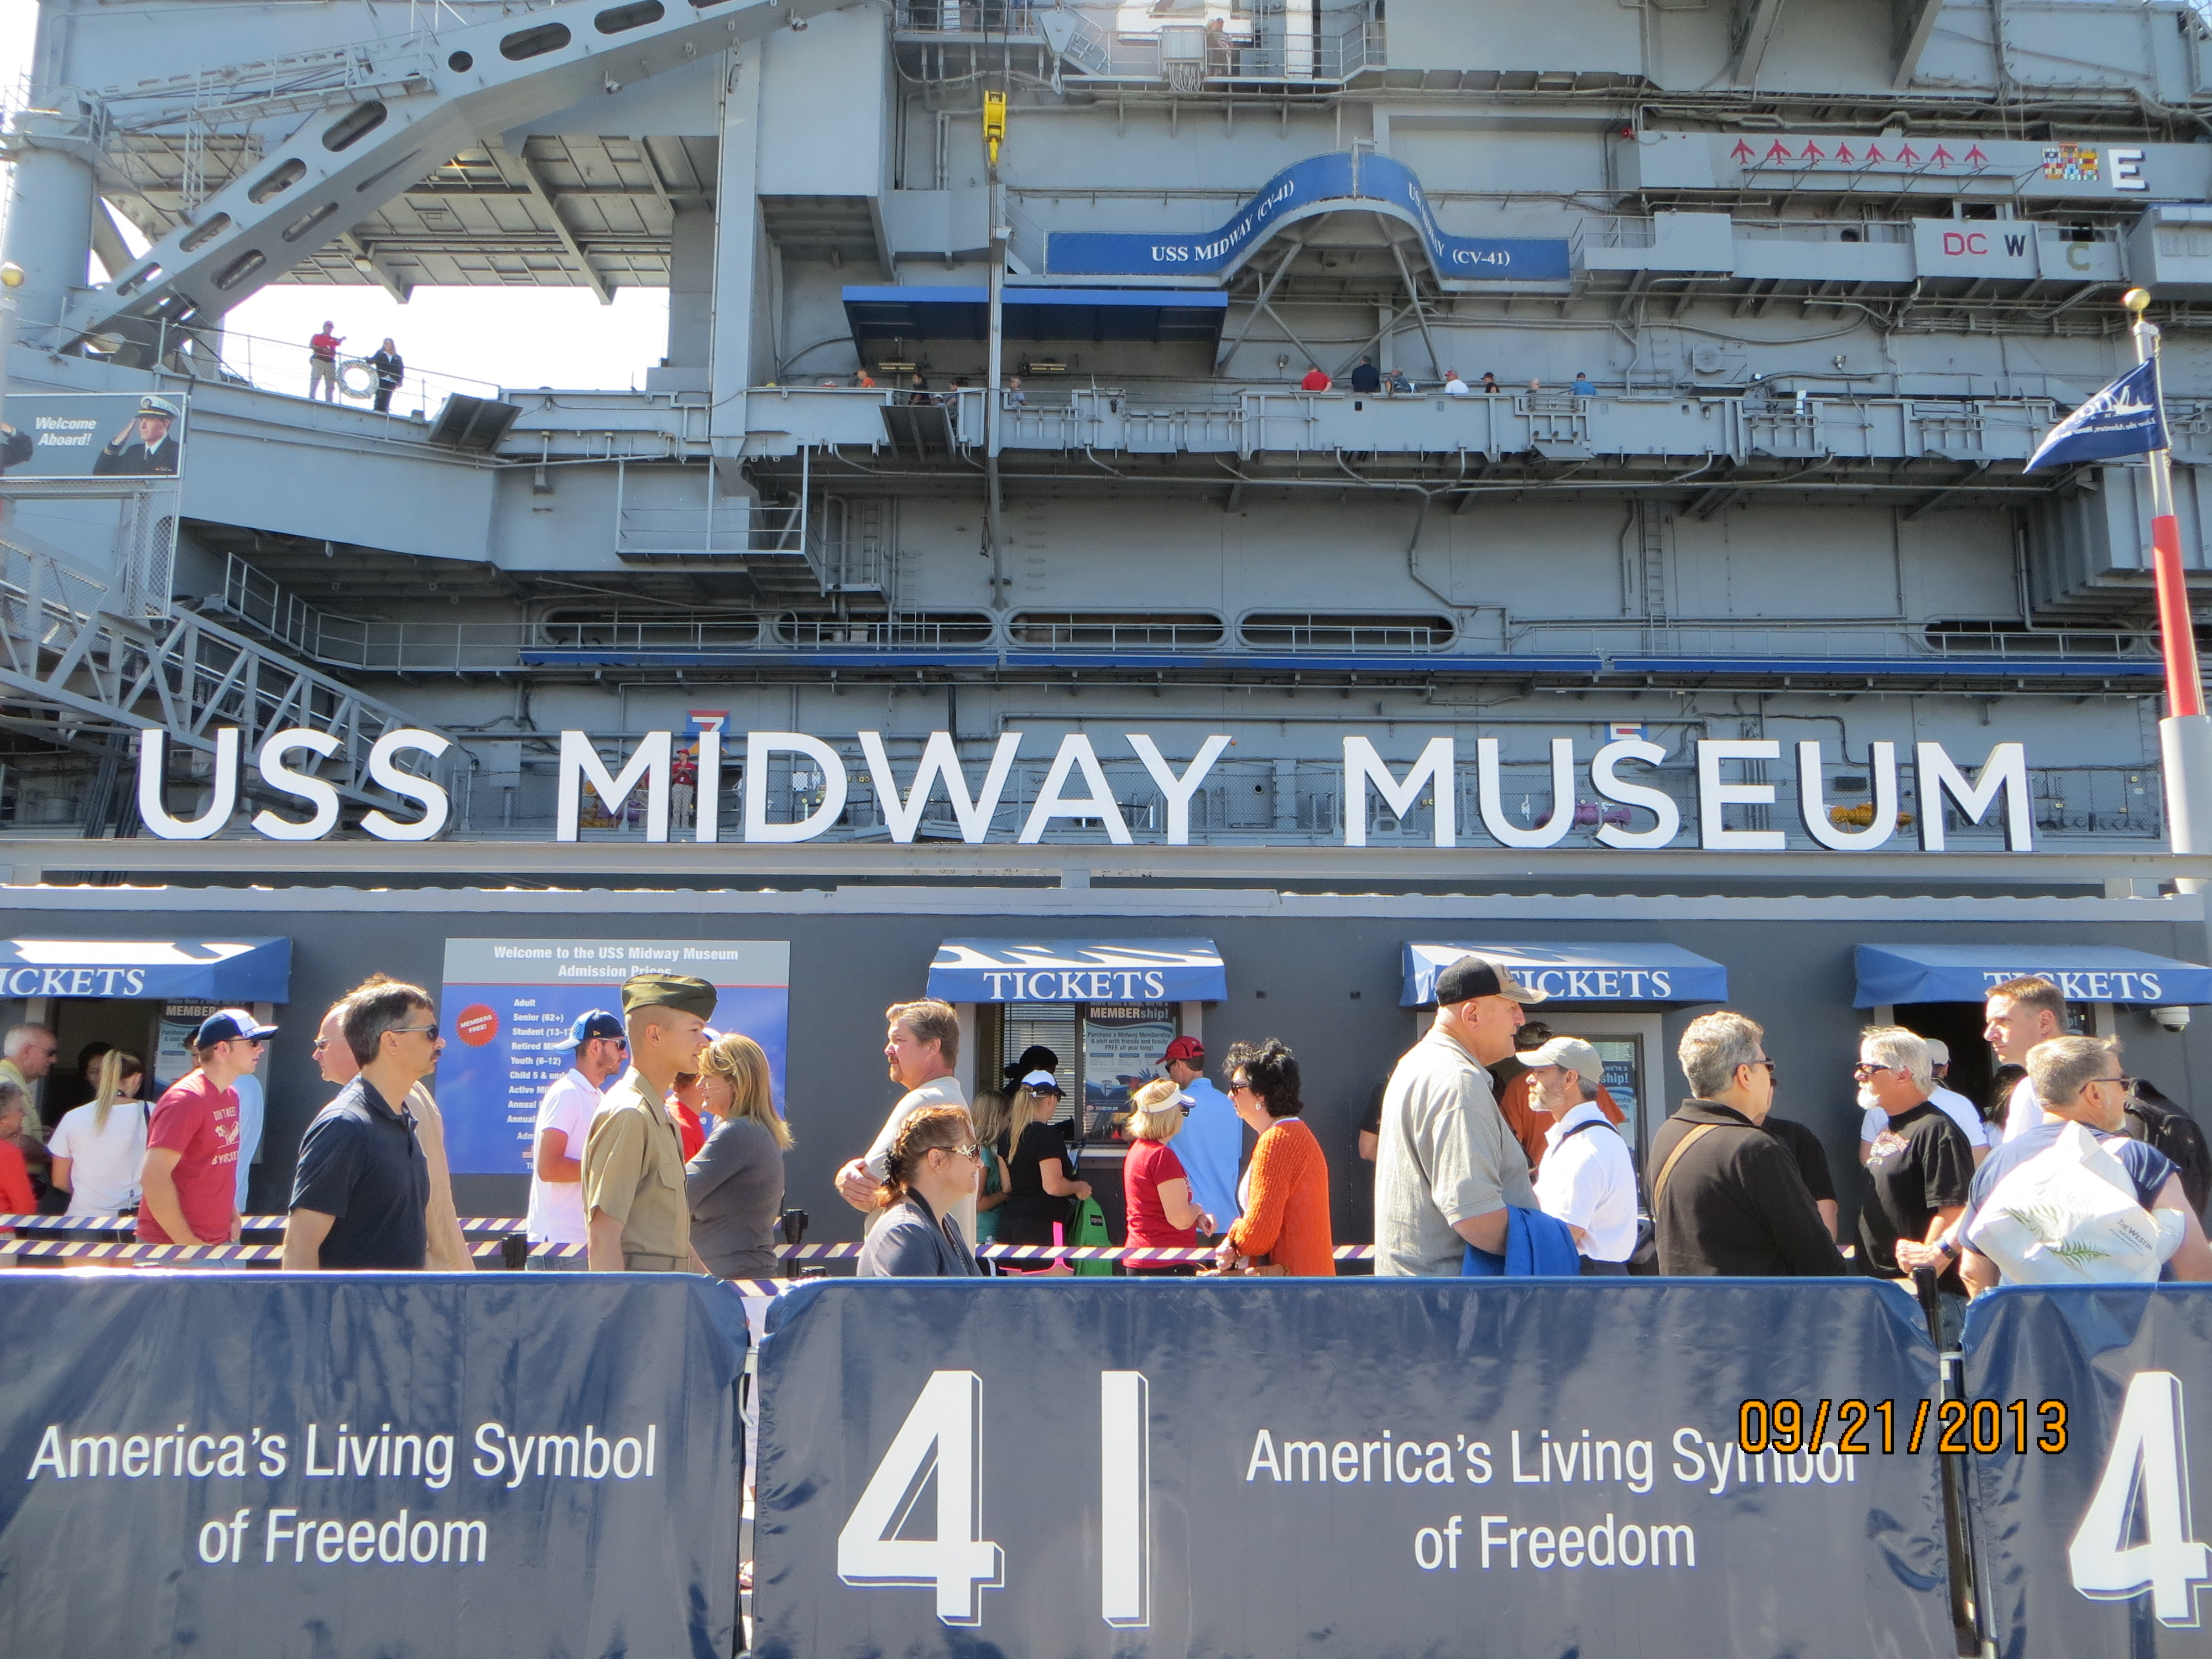 2013-09-21 MIDWAY(Meuwissen2910